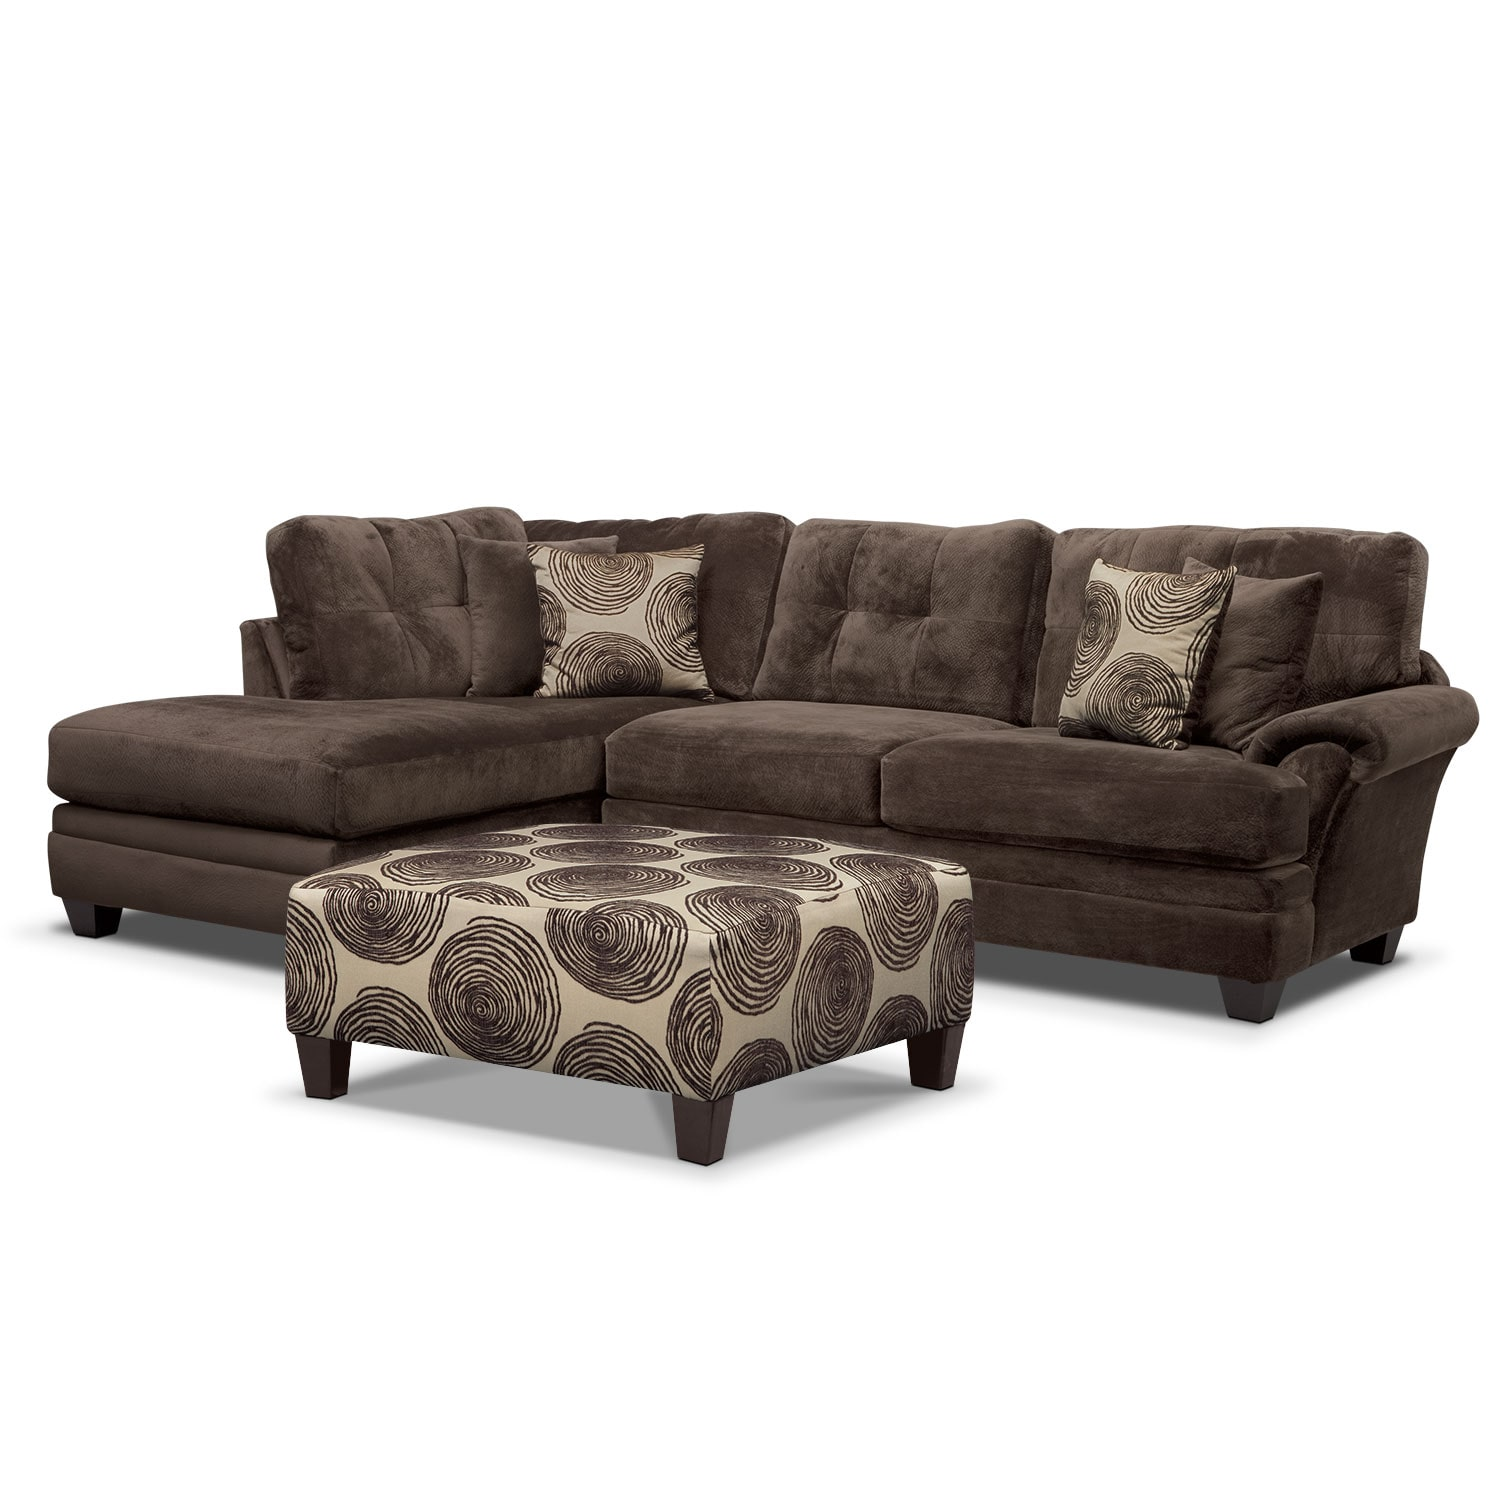 Living Room Furniture - Cordelle 2-Piece Left-Facing Chaise Sectional Plus FREE Cocktail Ottoman - Chocolate